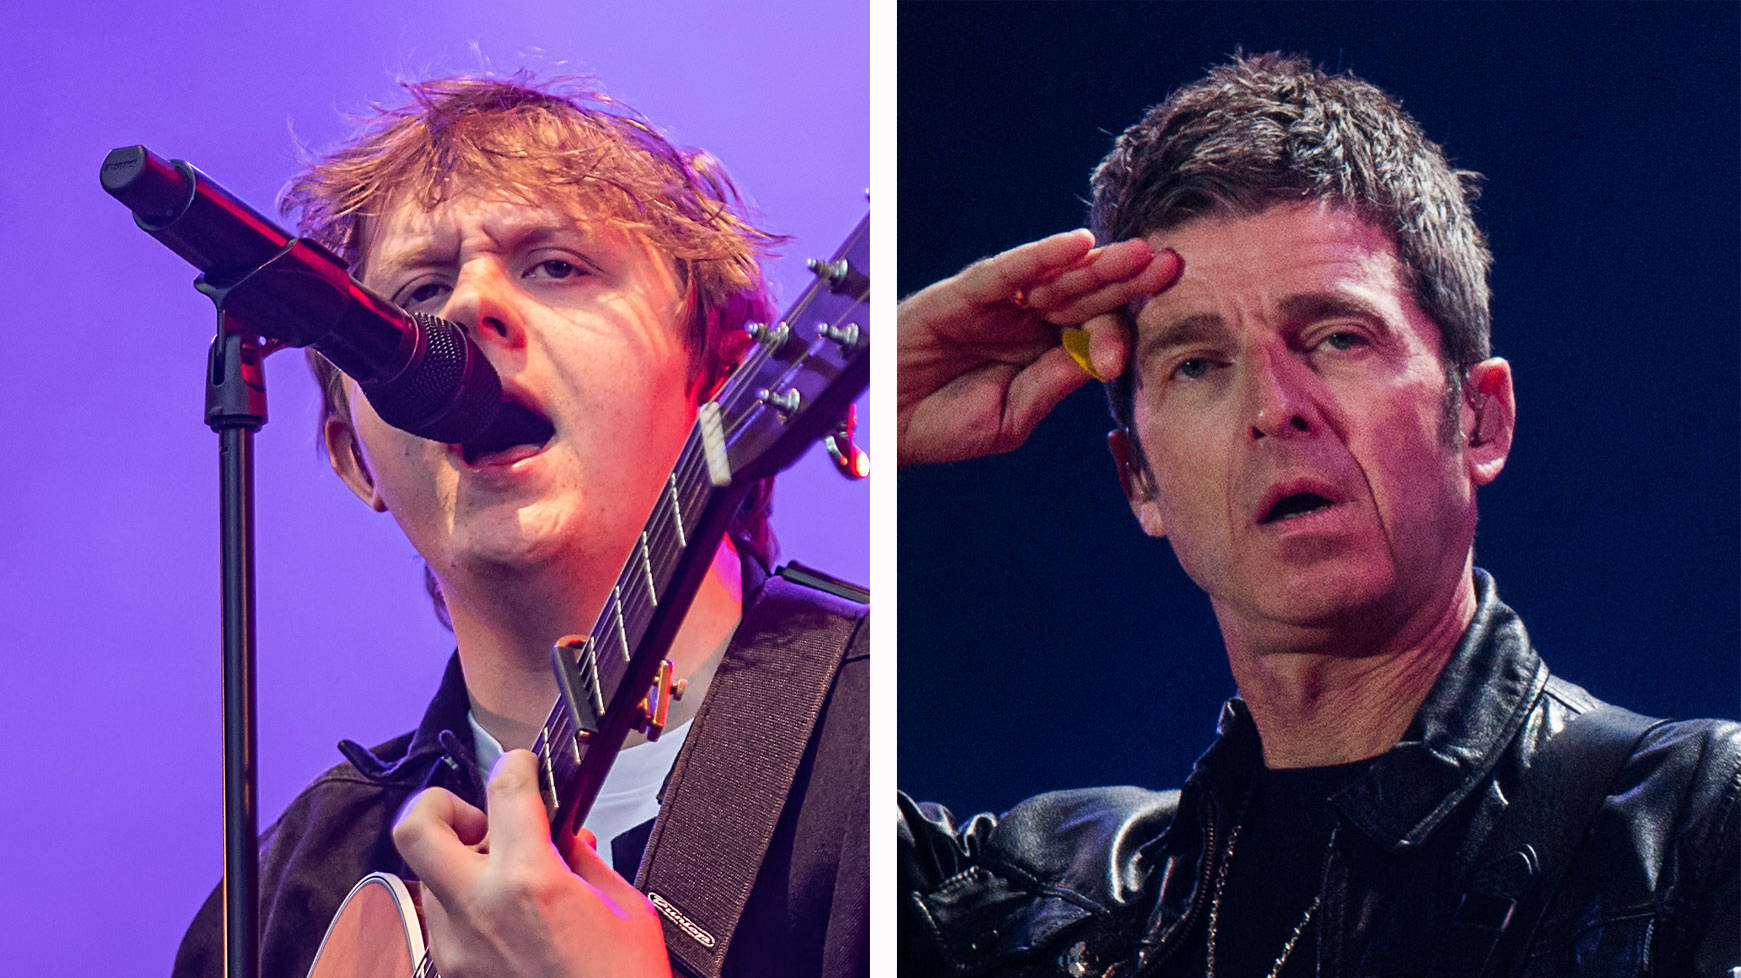 Lewis Capaldi slams Noel Gallagher for end of No. 1 album chart reign